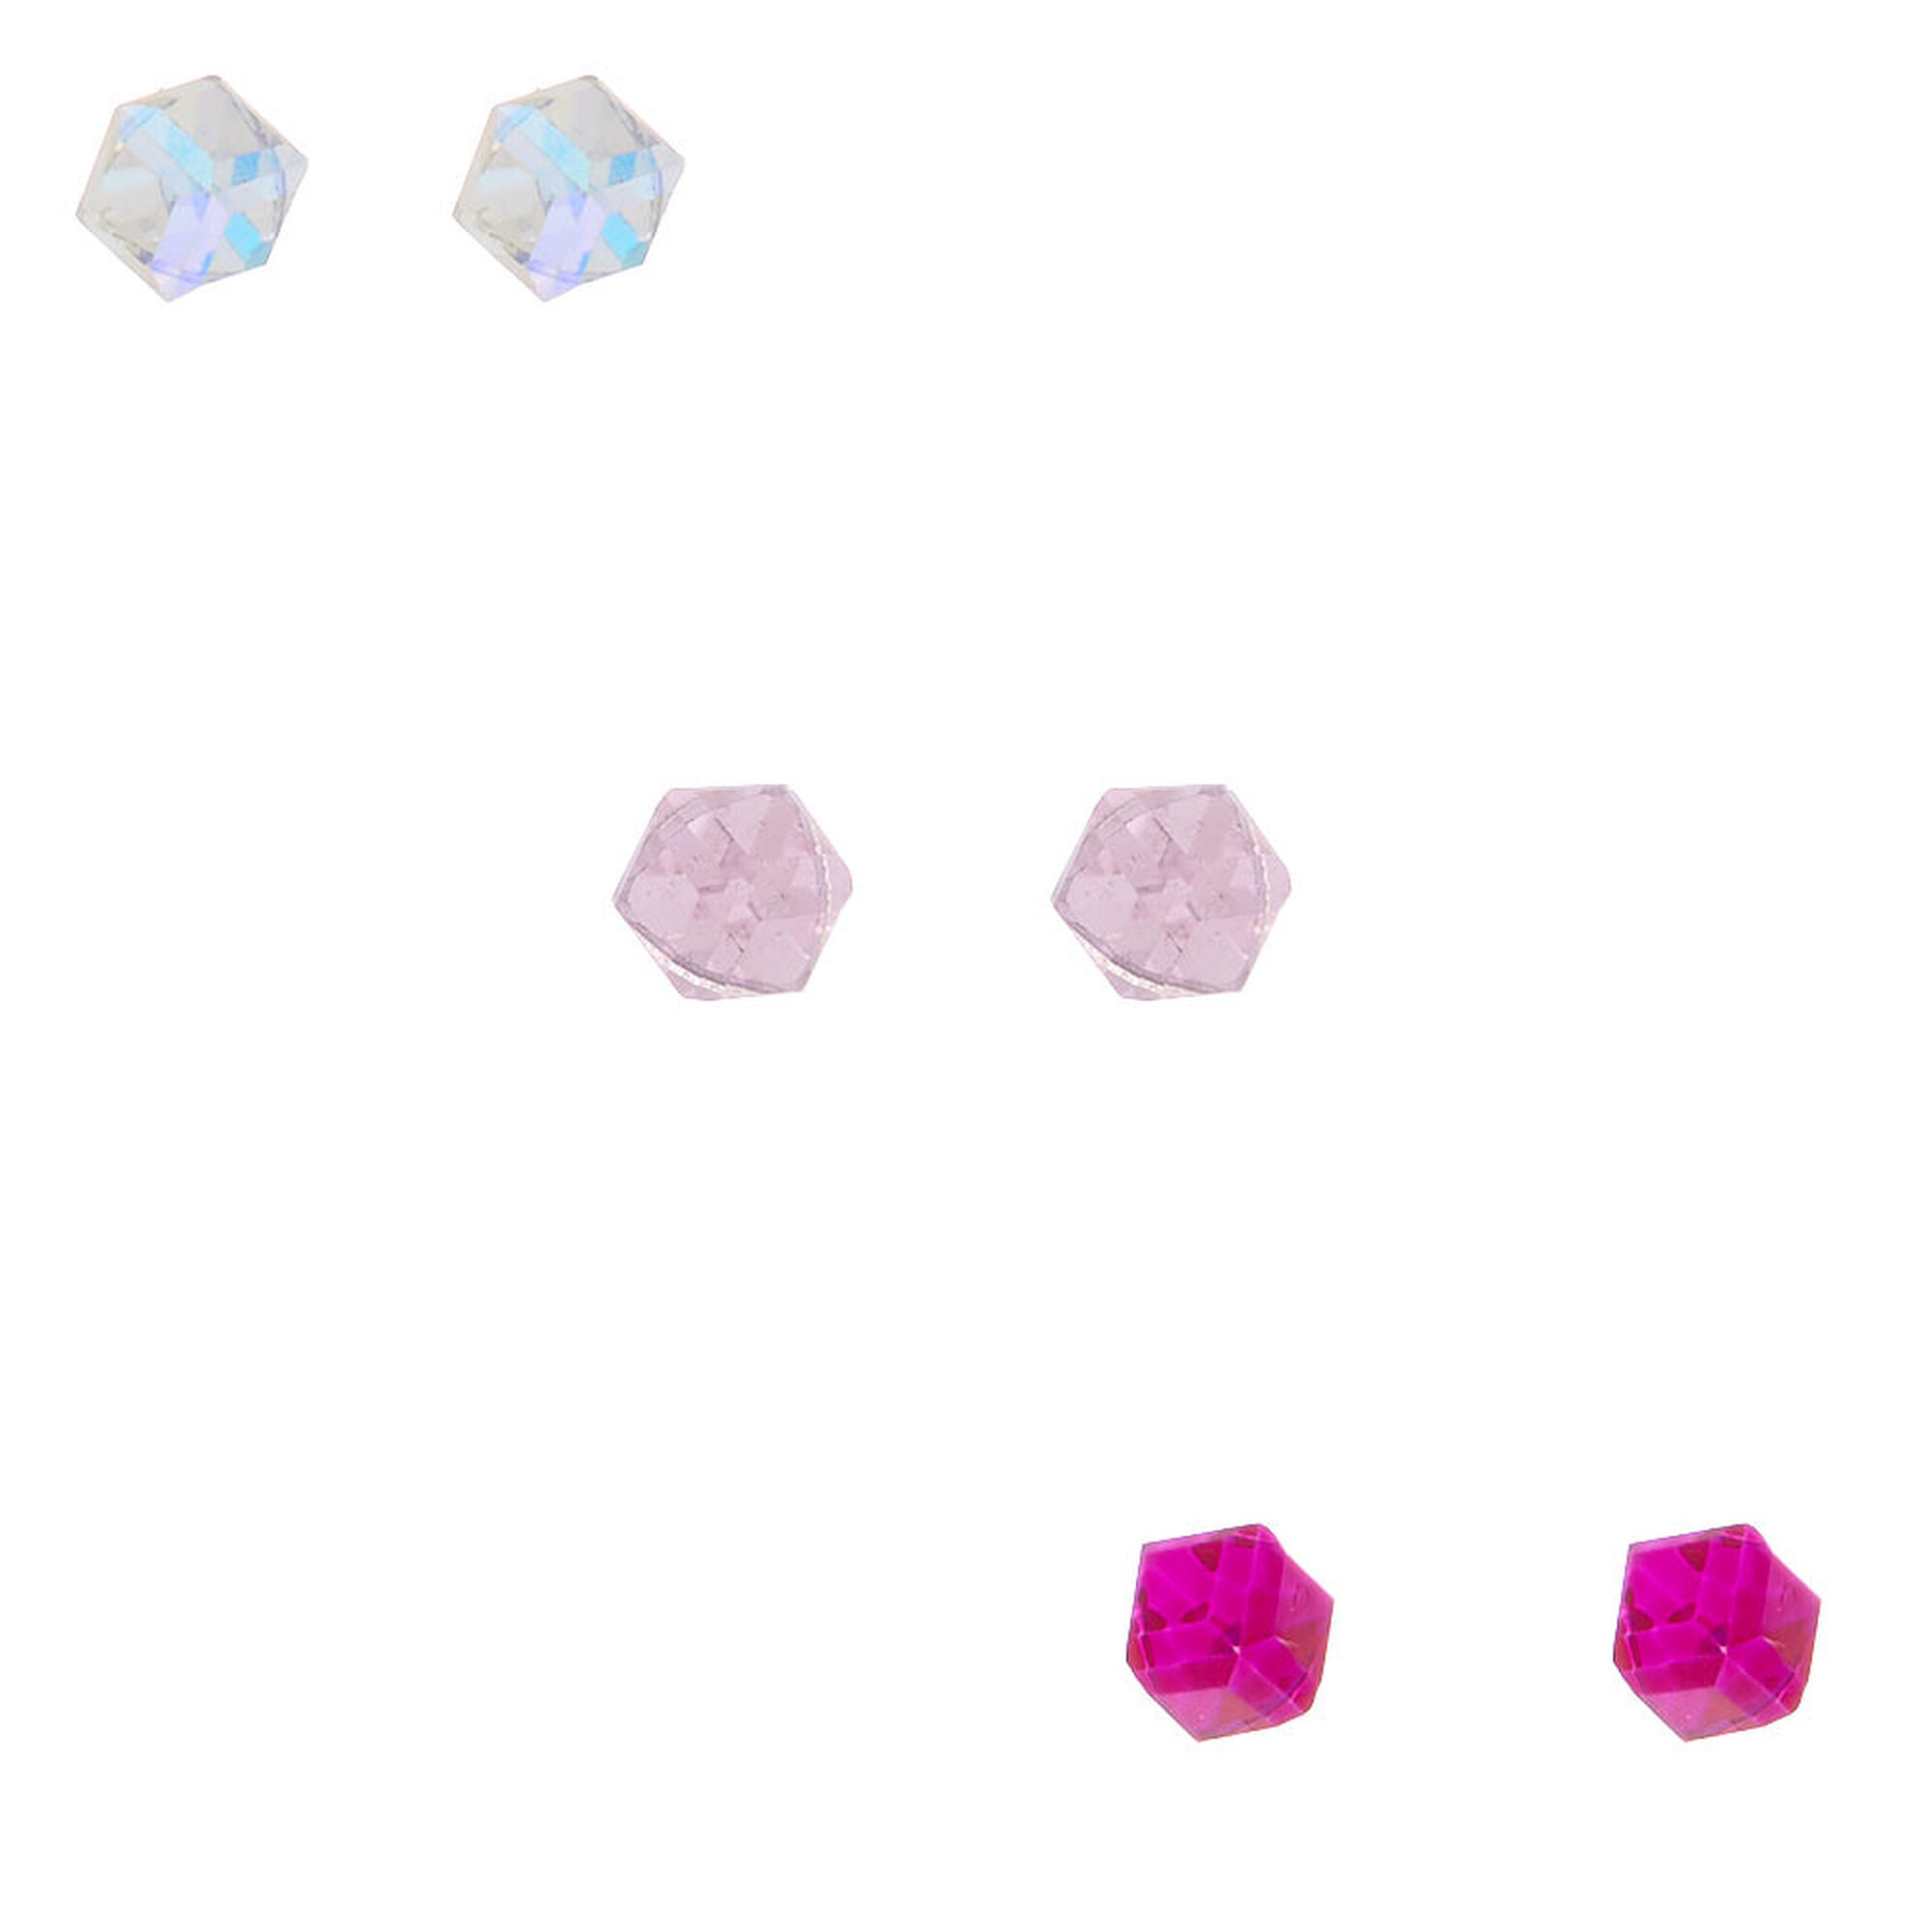 6a1f2d85330f9 Sterling Silver Iridescent Cube Stud Earrings - Pink, 3 Pack